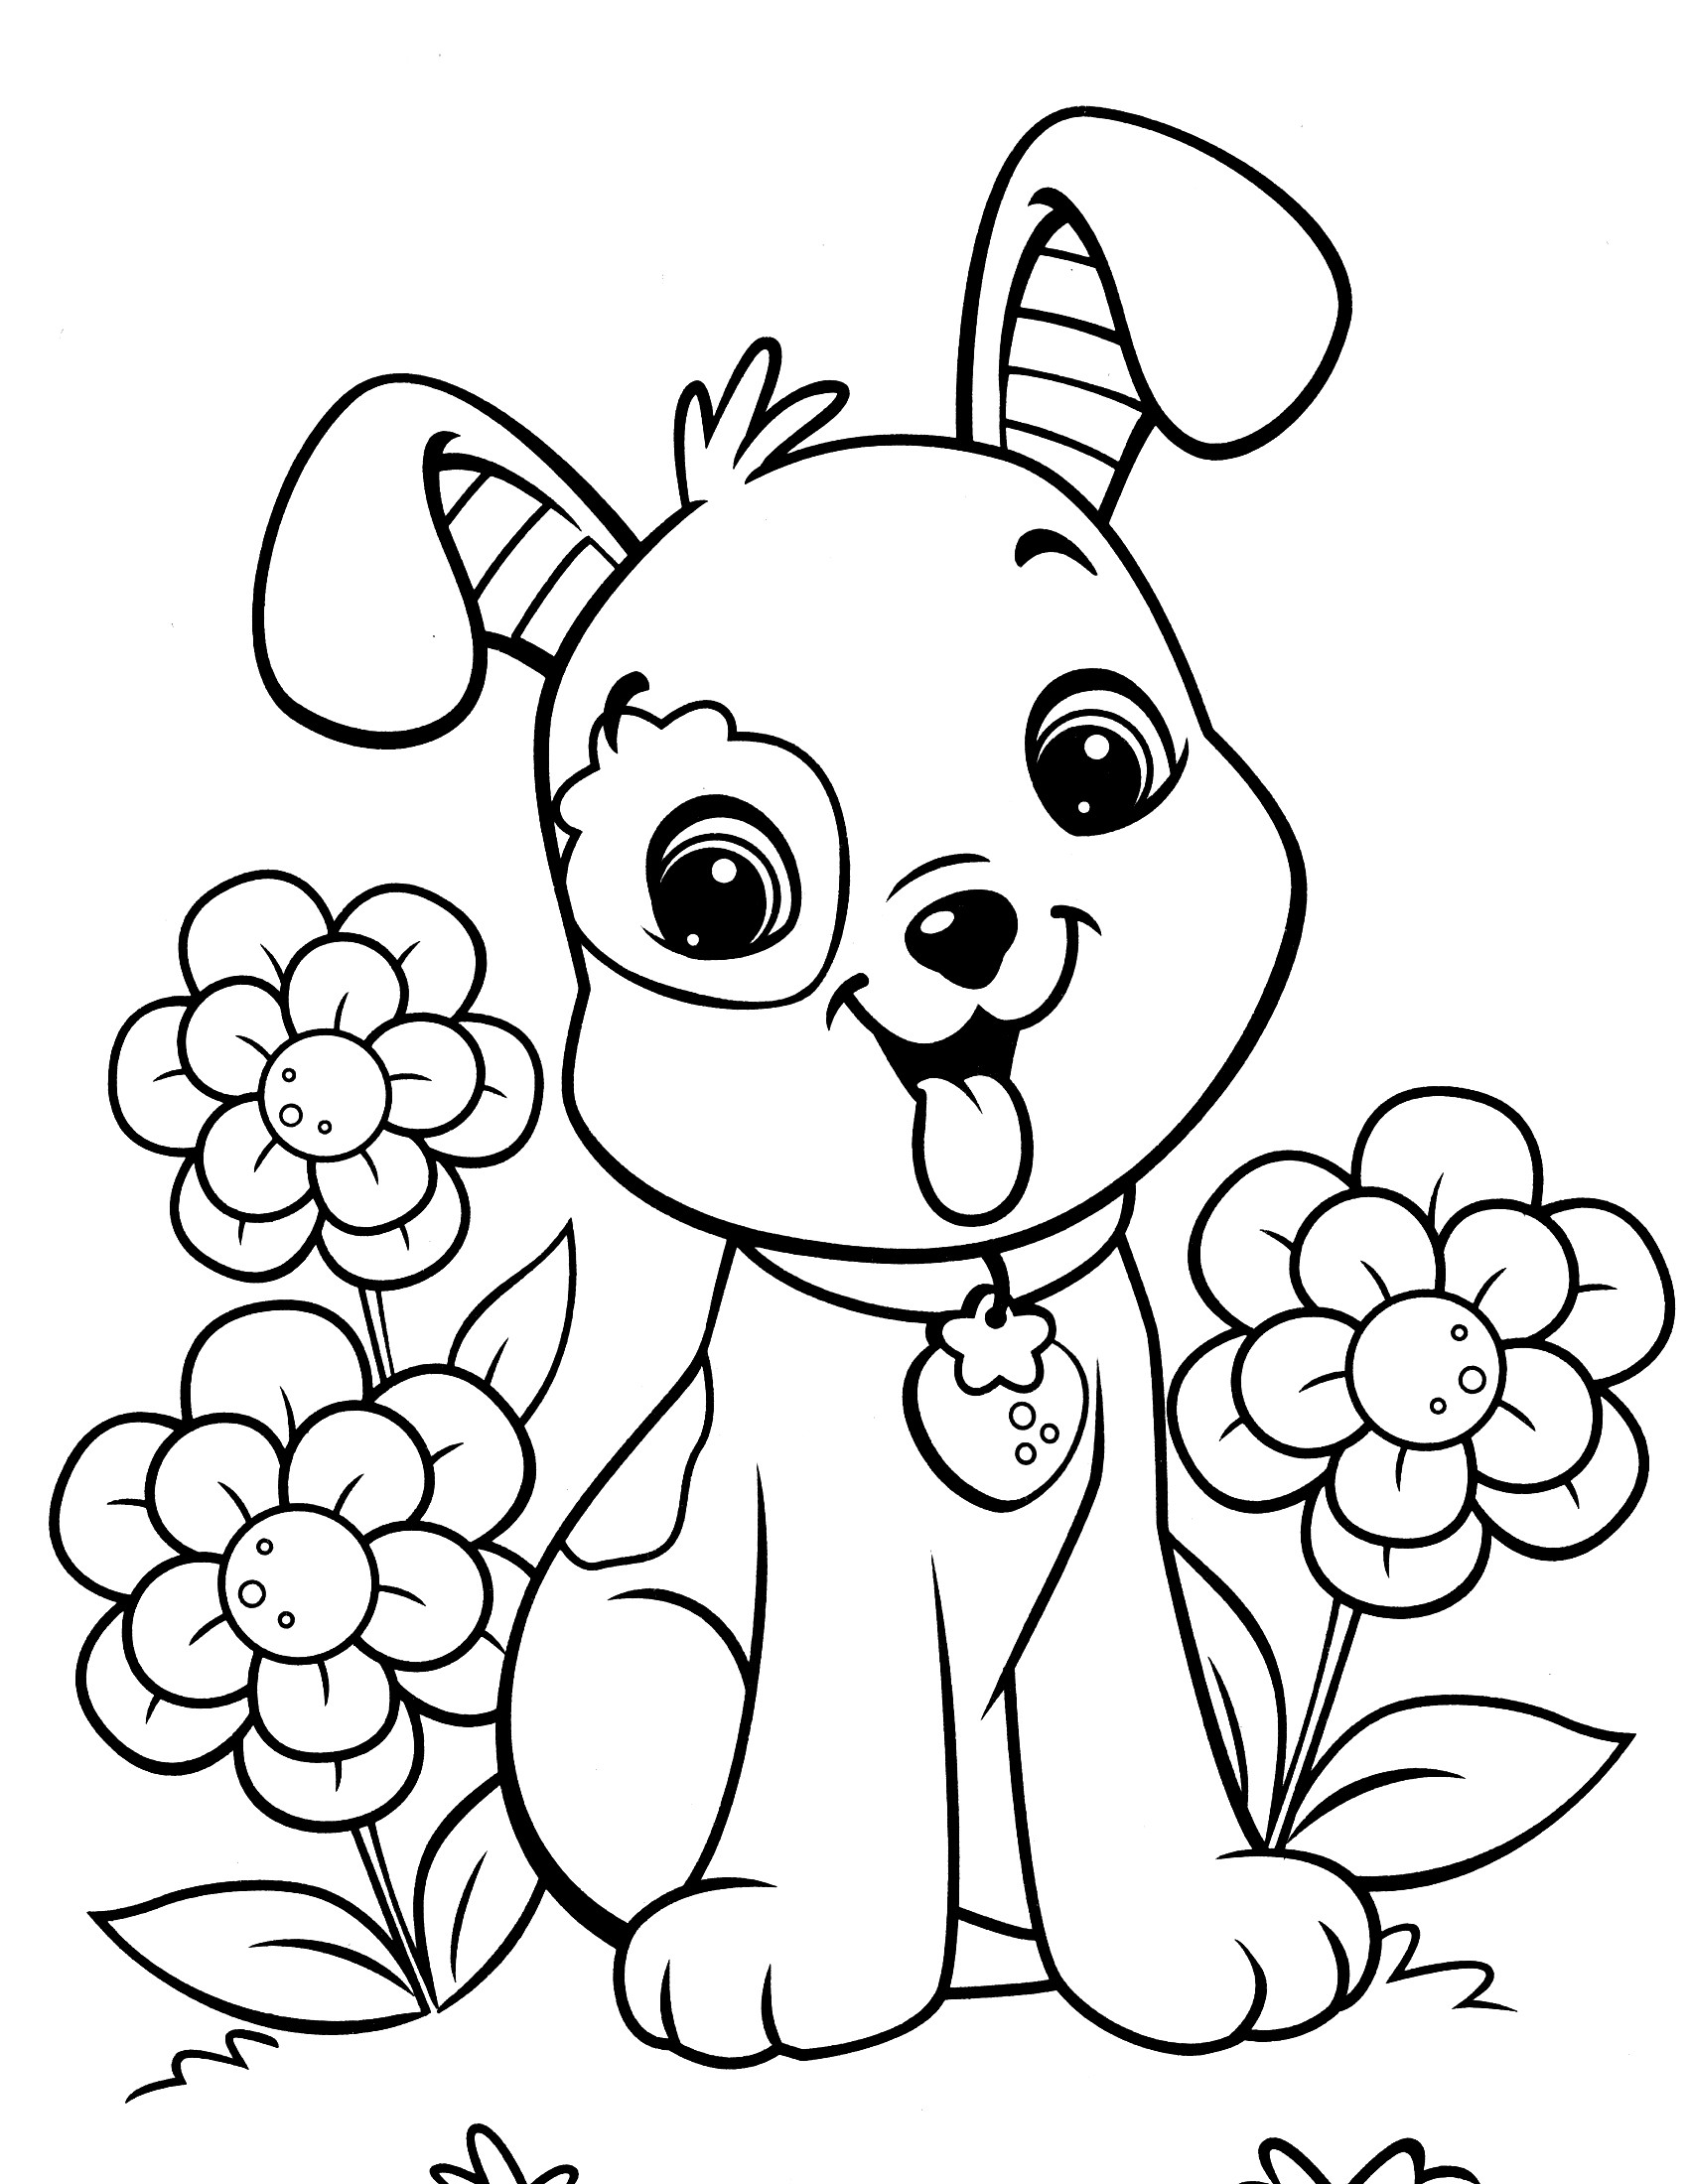 Coloring Pages Kids  Puppy Coloring Pages Best Coloring Pages For Kids